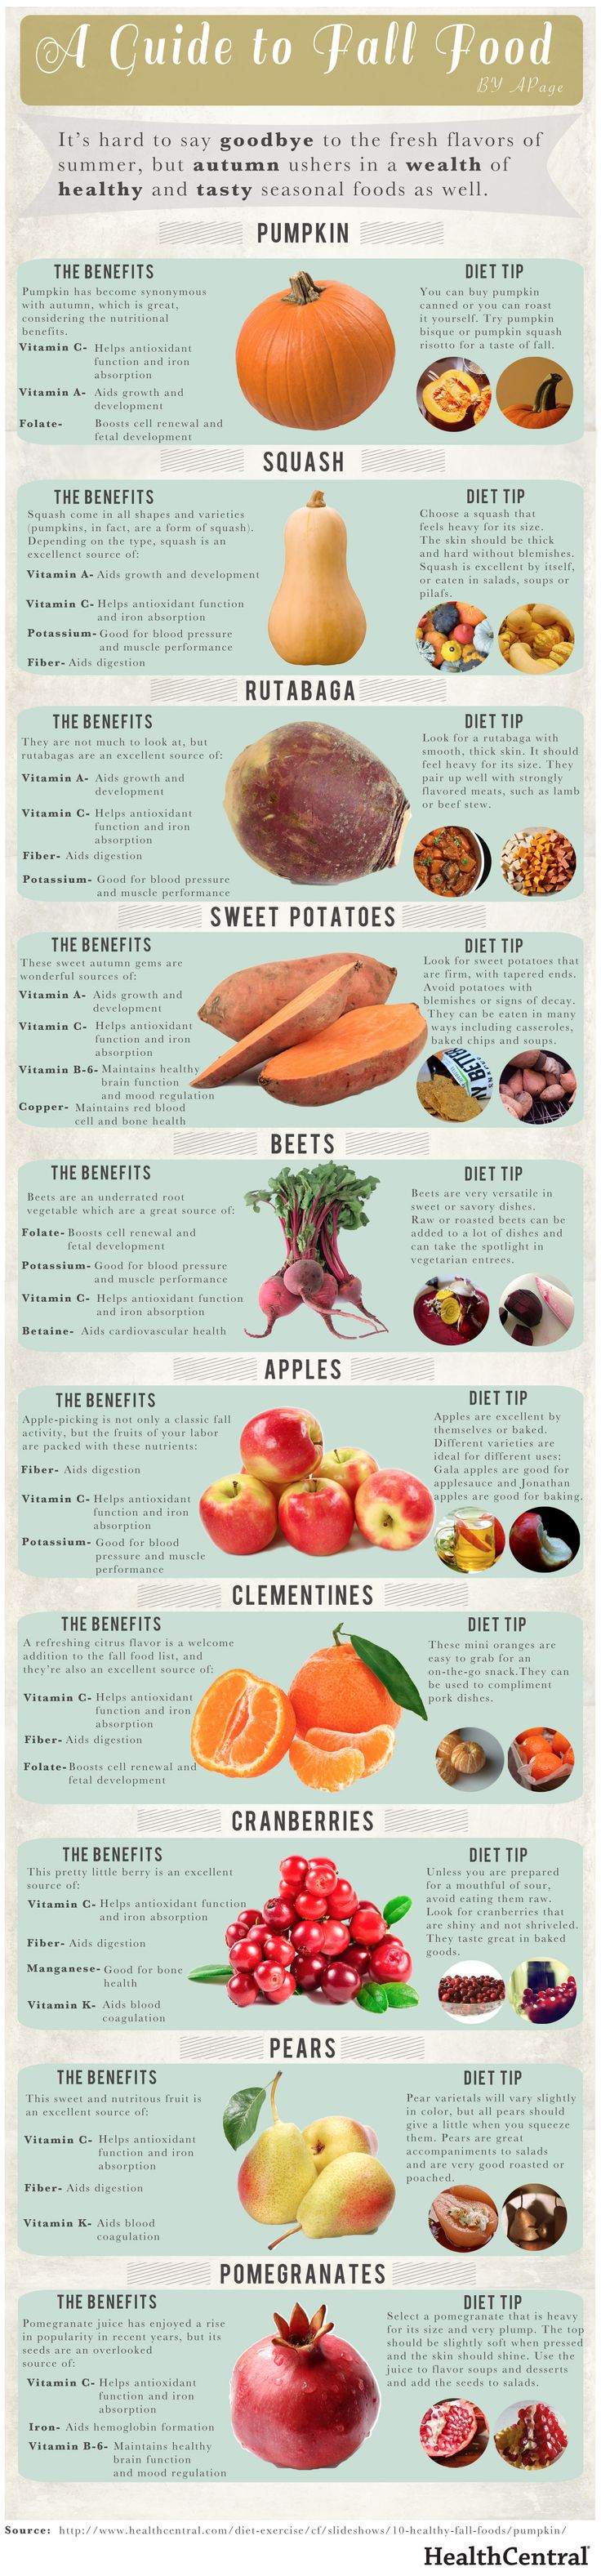 Fall has arrived and new seasonal foodsare rotating into our menus. We all know we should eat a varietyof fruits,vegetables, proteins, etc everyday to keep healthy, but it's also important to ea...